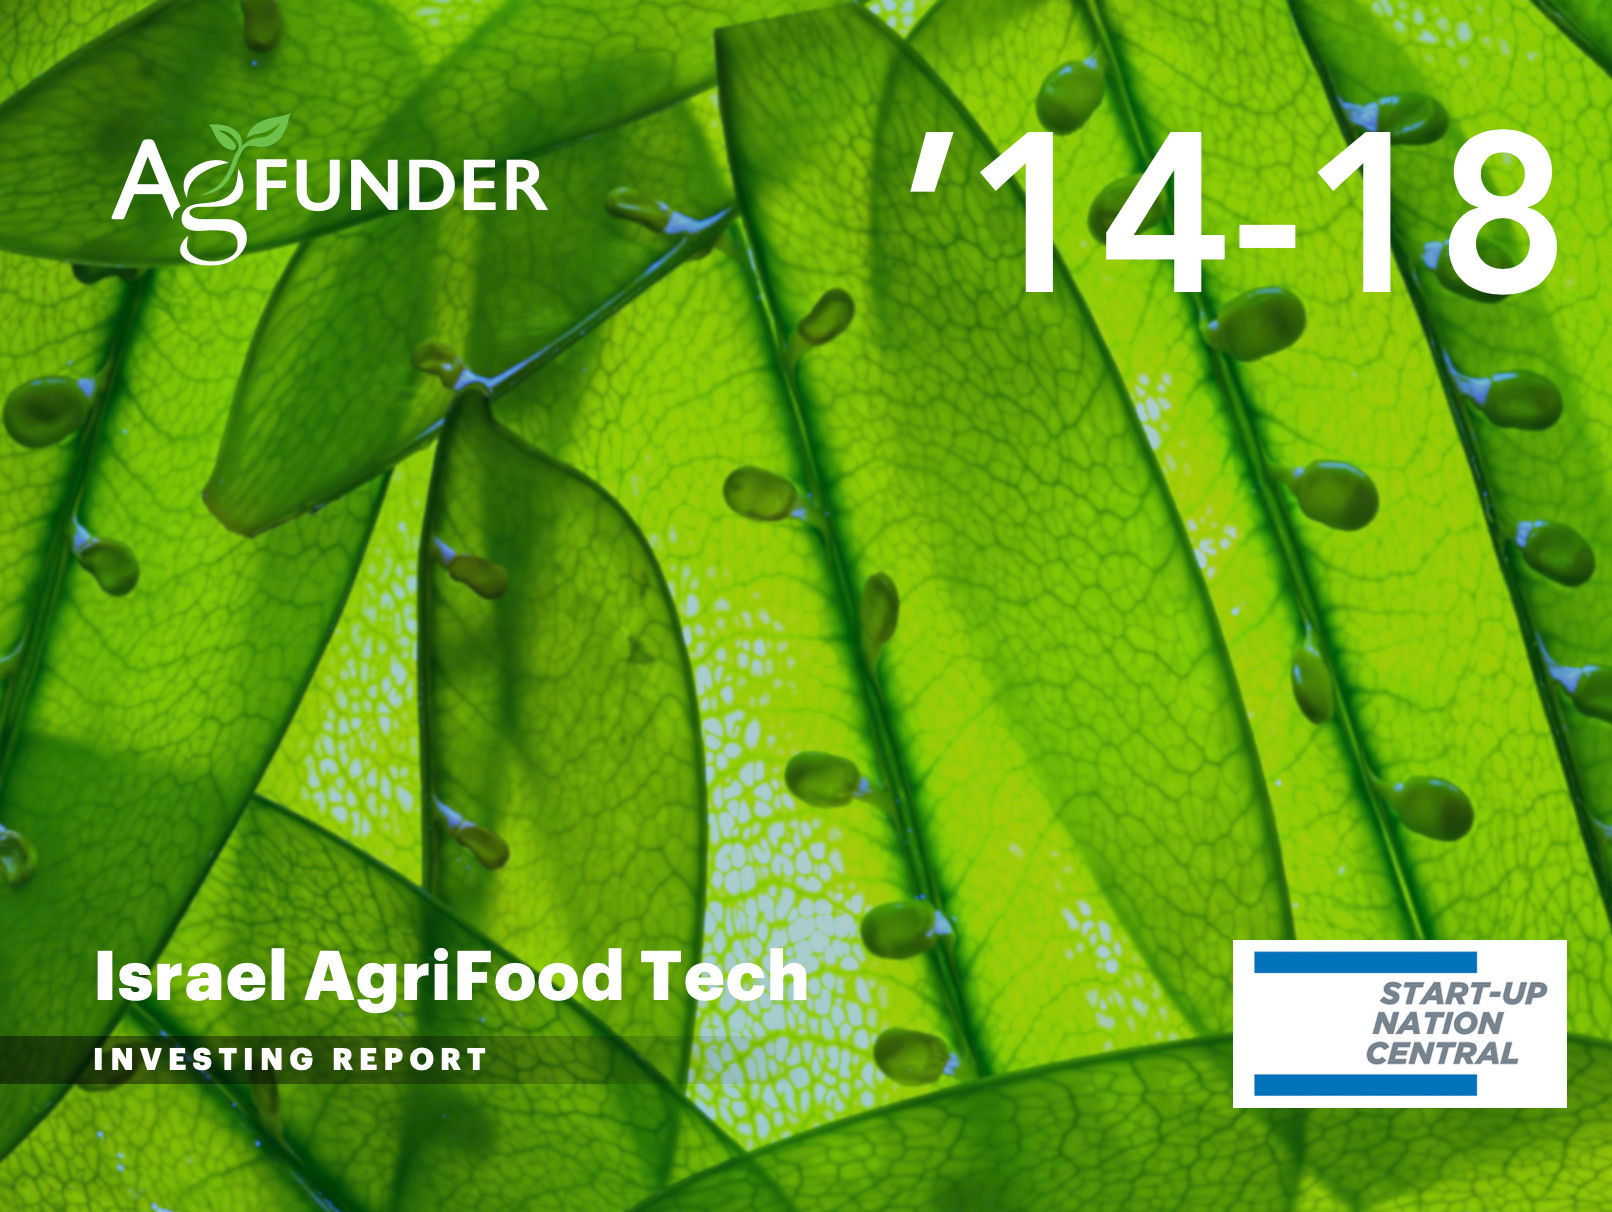 Israel AgriFood Tech Investing Report 2014-2018